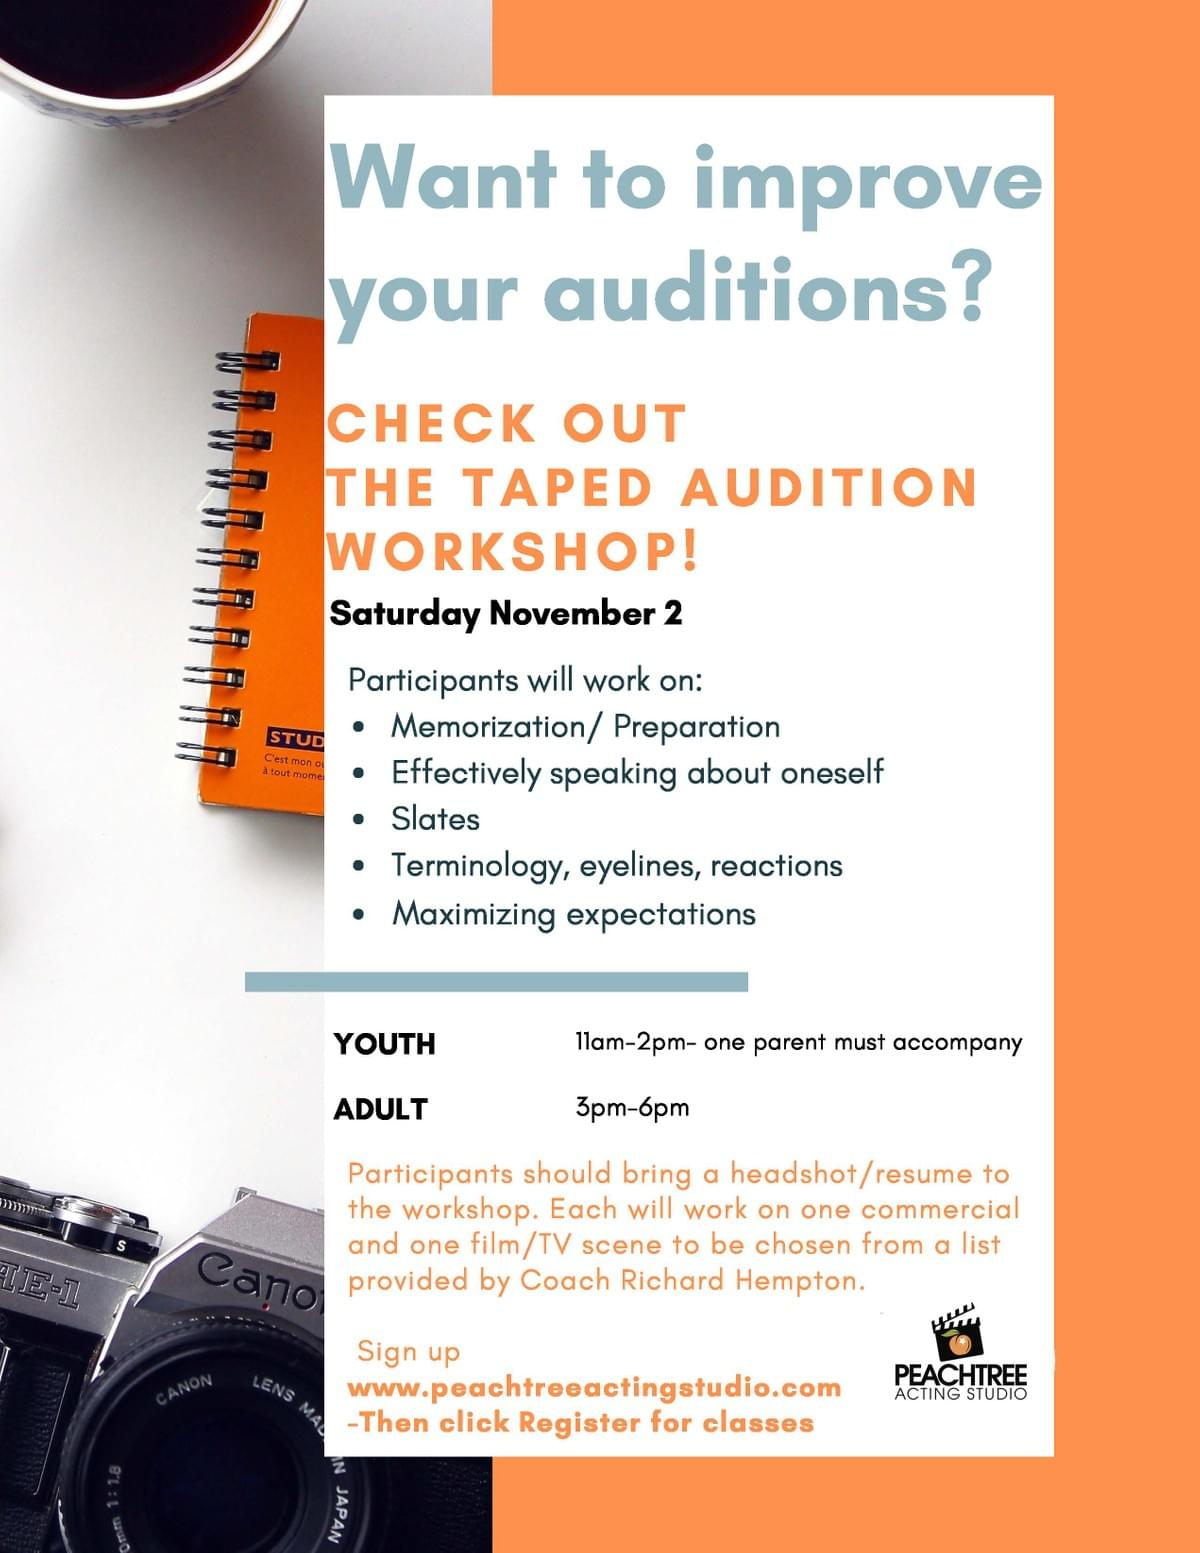 Come join us on November 2, 2019, for The Taped Audition workshop with Coach Richard Hempton!  Students will learn how to master this essential exercise for actors in the Atlanta market.  Sessions for both youth/teen and adults!